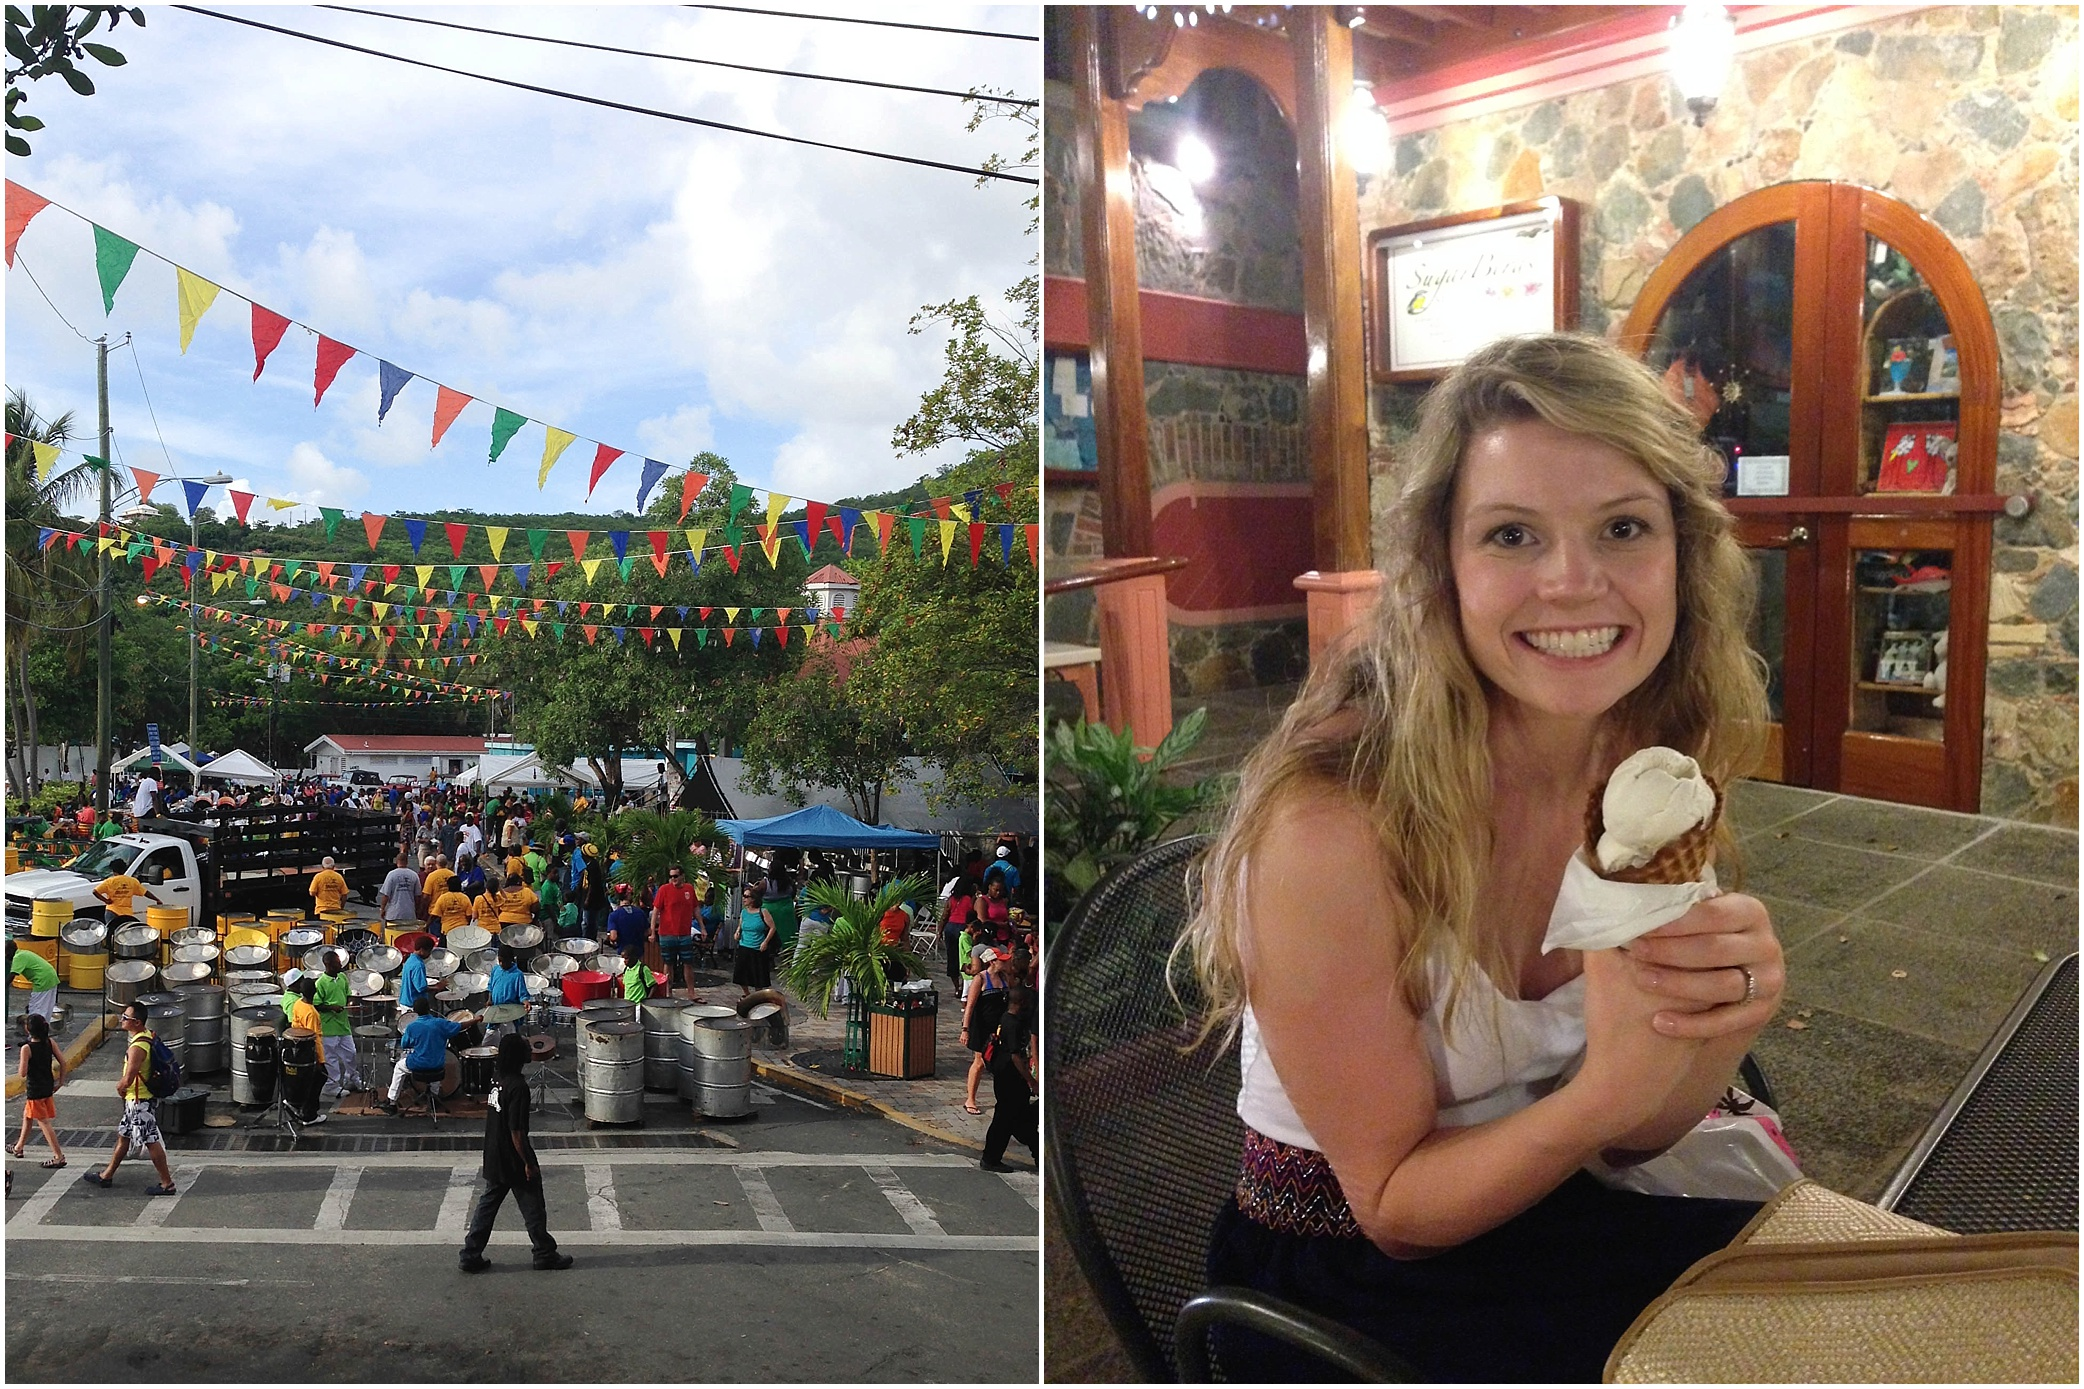 The steel drum festival!! This was such a fun experience and the sound of the drums was so island-y (is that a word?!) ...it was the perfect end to our visit!! Oh, and I'm pretty sure we got ice cream every single night! ;)